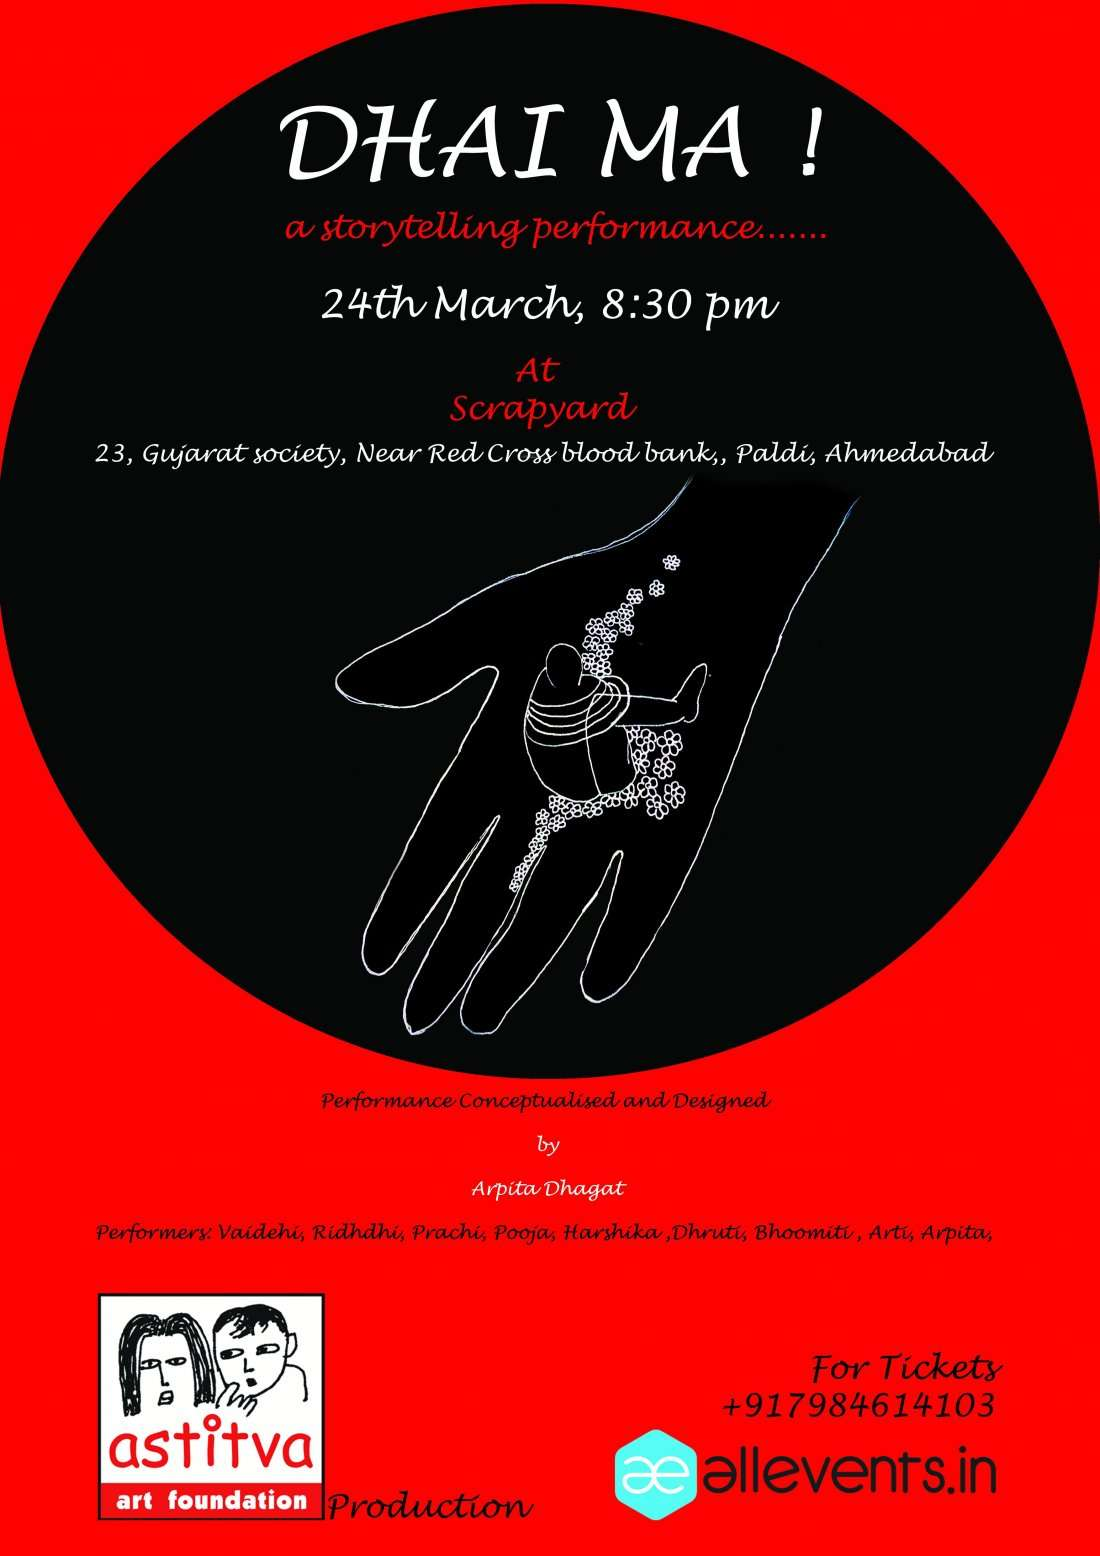 https://creativeyatra.com/wp-content/uploads/2018/02/Dhai-Ma-A-Storytelling-Performance-Events-in-Ahmedabad.jpg